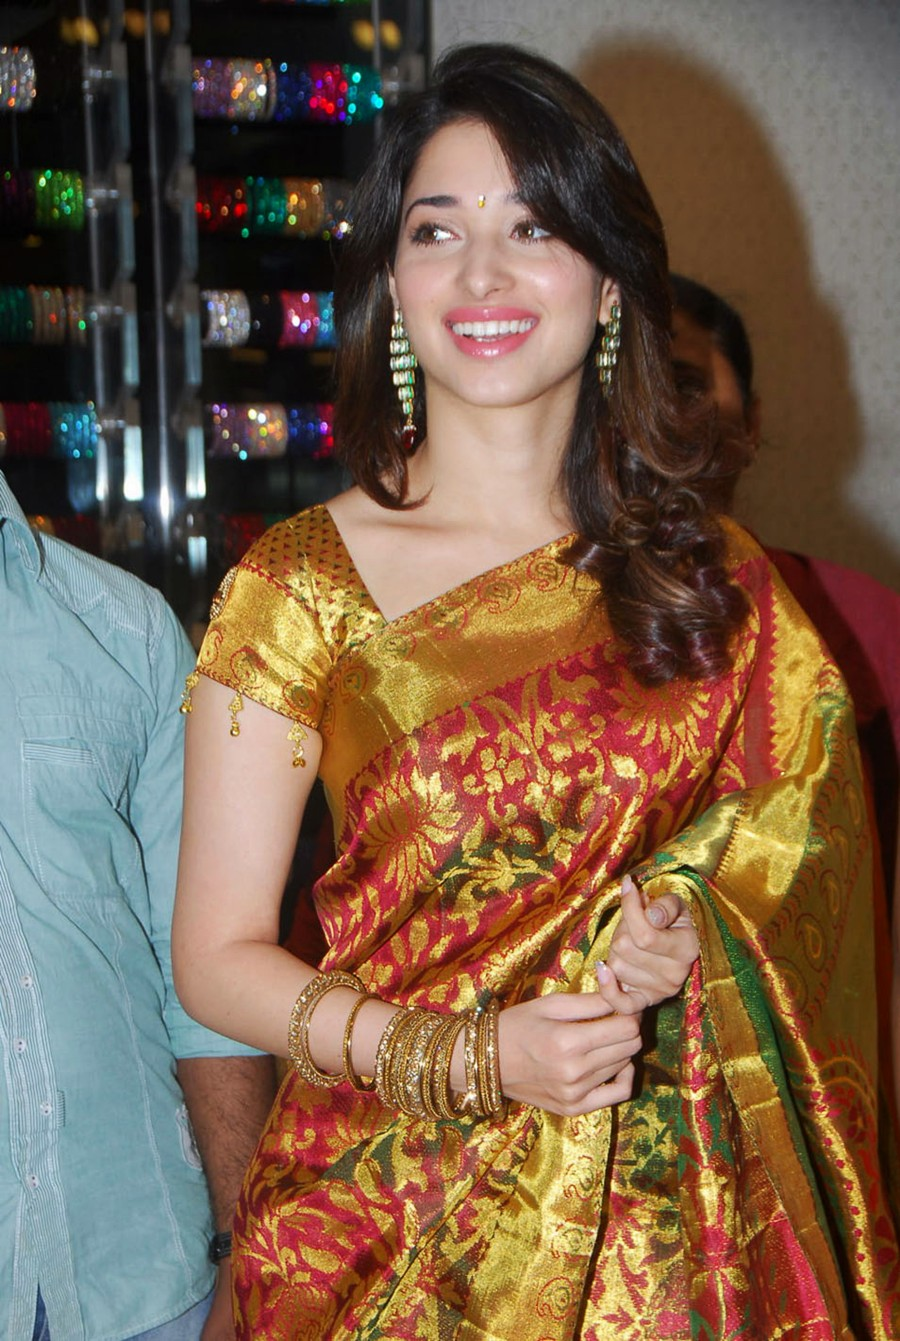 Tamanna Bangalore: ` Gorgeous Tamanna In A Traditional LoOk `